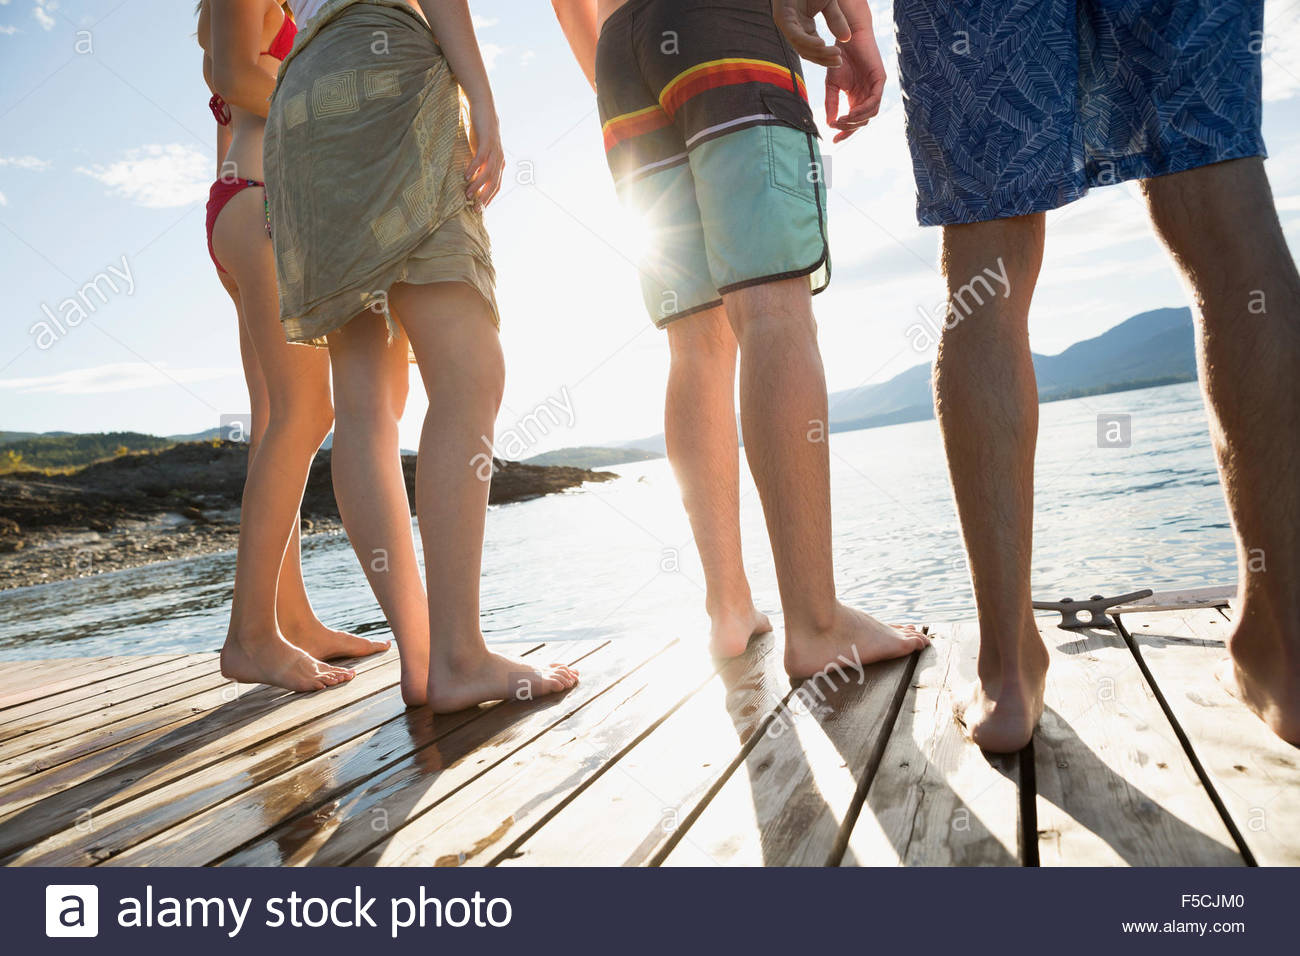 Young friends standing on sunny lake dock - Stock Image